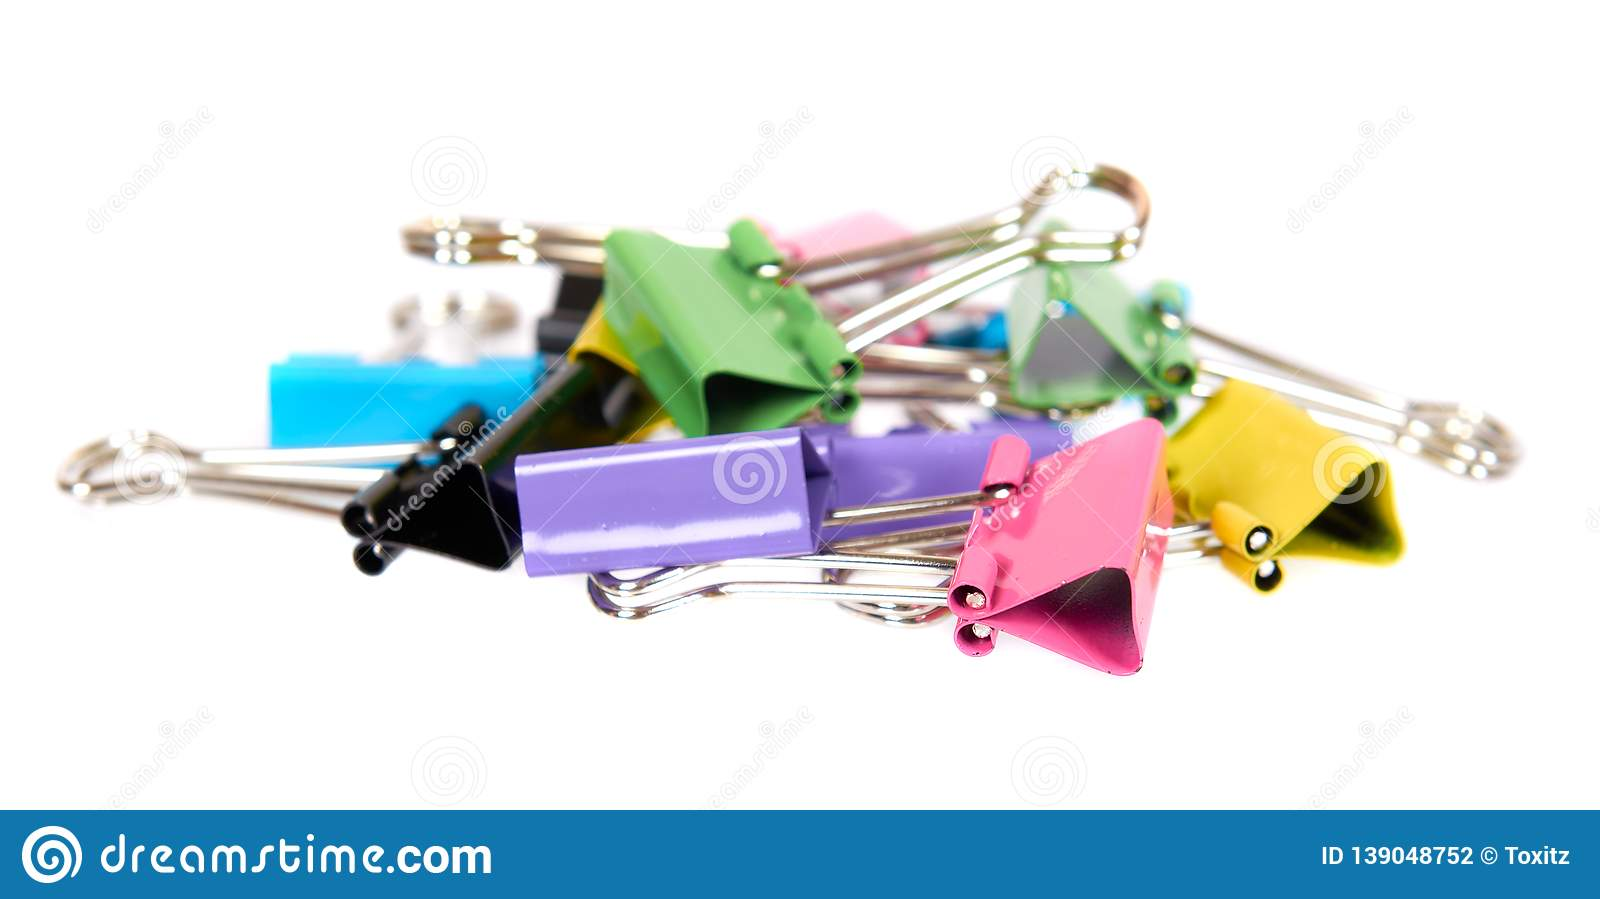 Color paper cilp, office accessory, fastener for notes